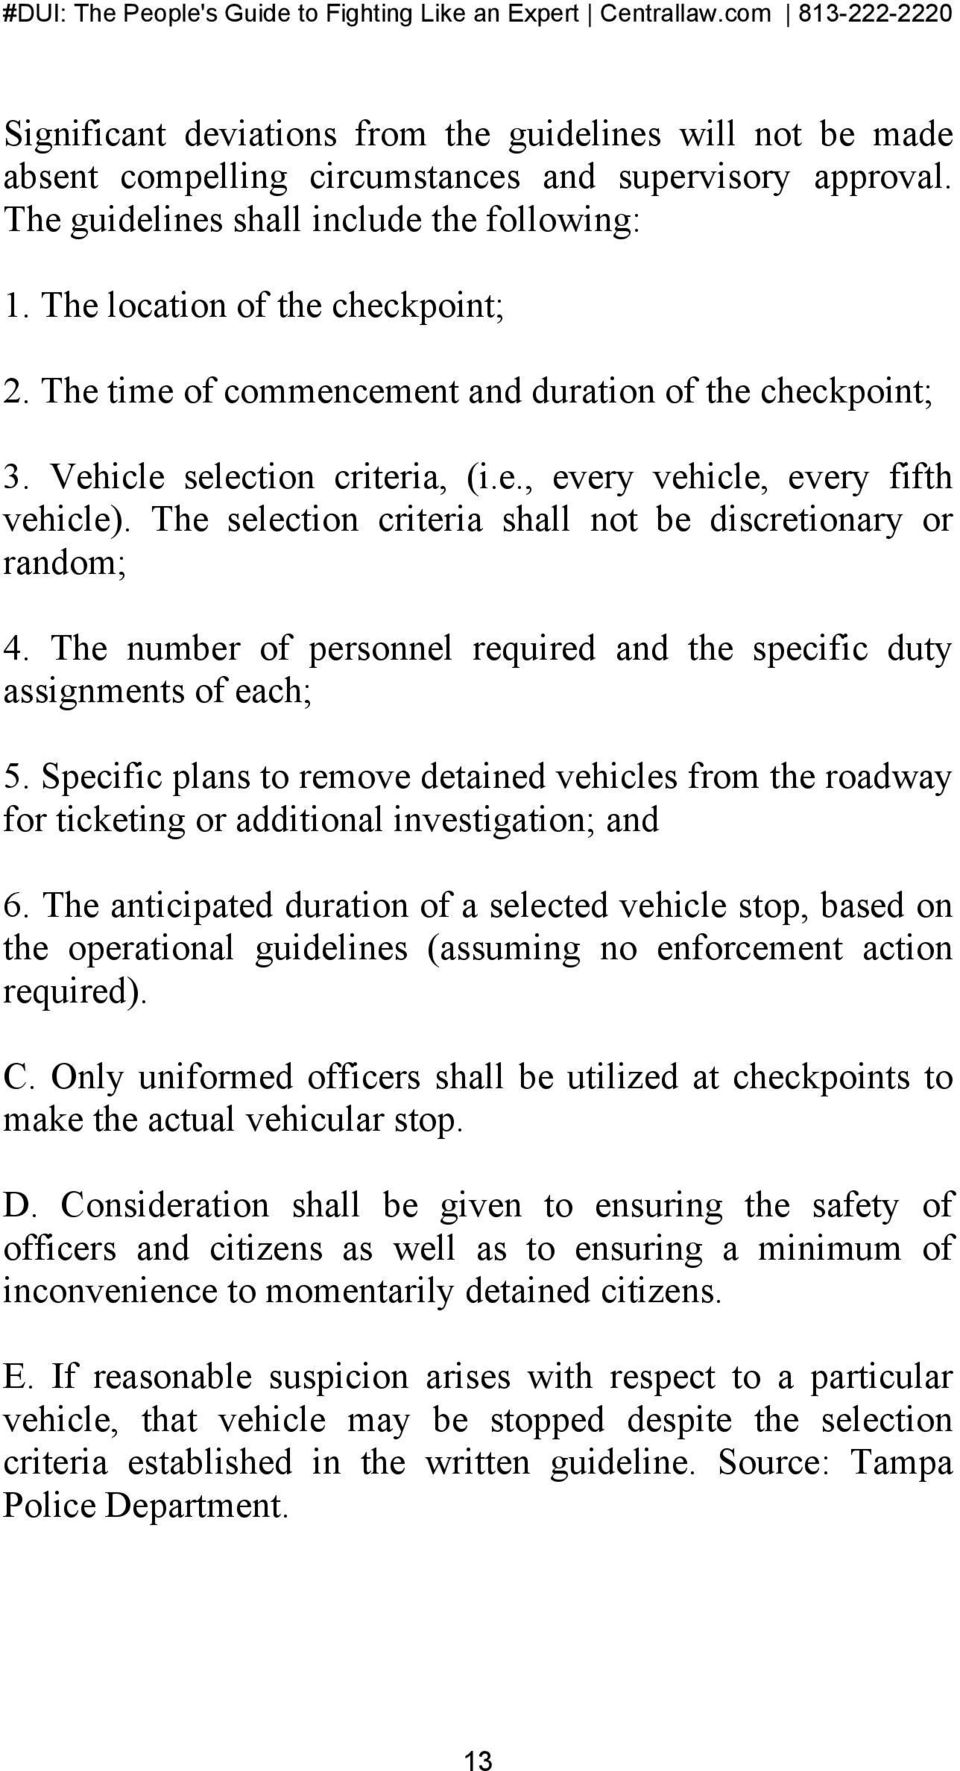 The number of personnel required and the specific duty assignments of each; 5. Specific plans to remove detained vehicles from the roadway for ticketing or additional investigation; and 6.